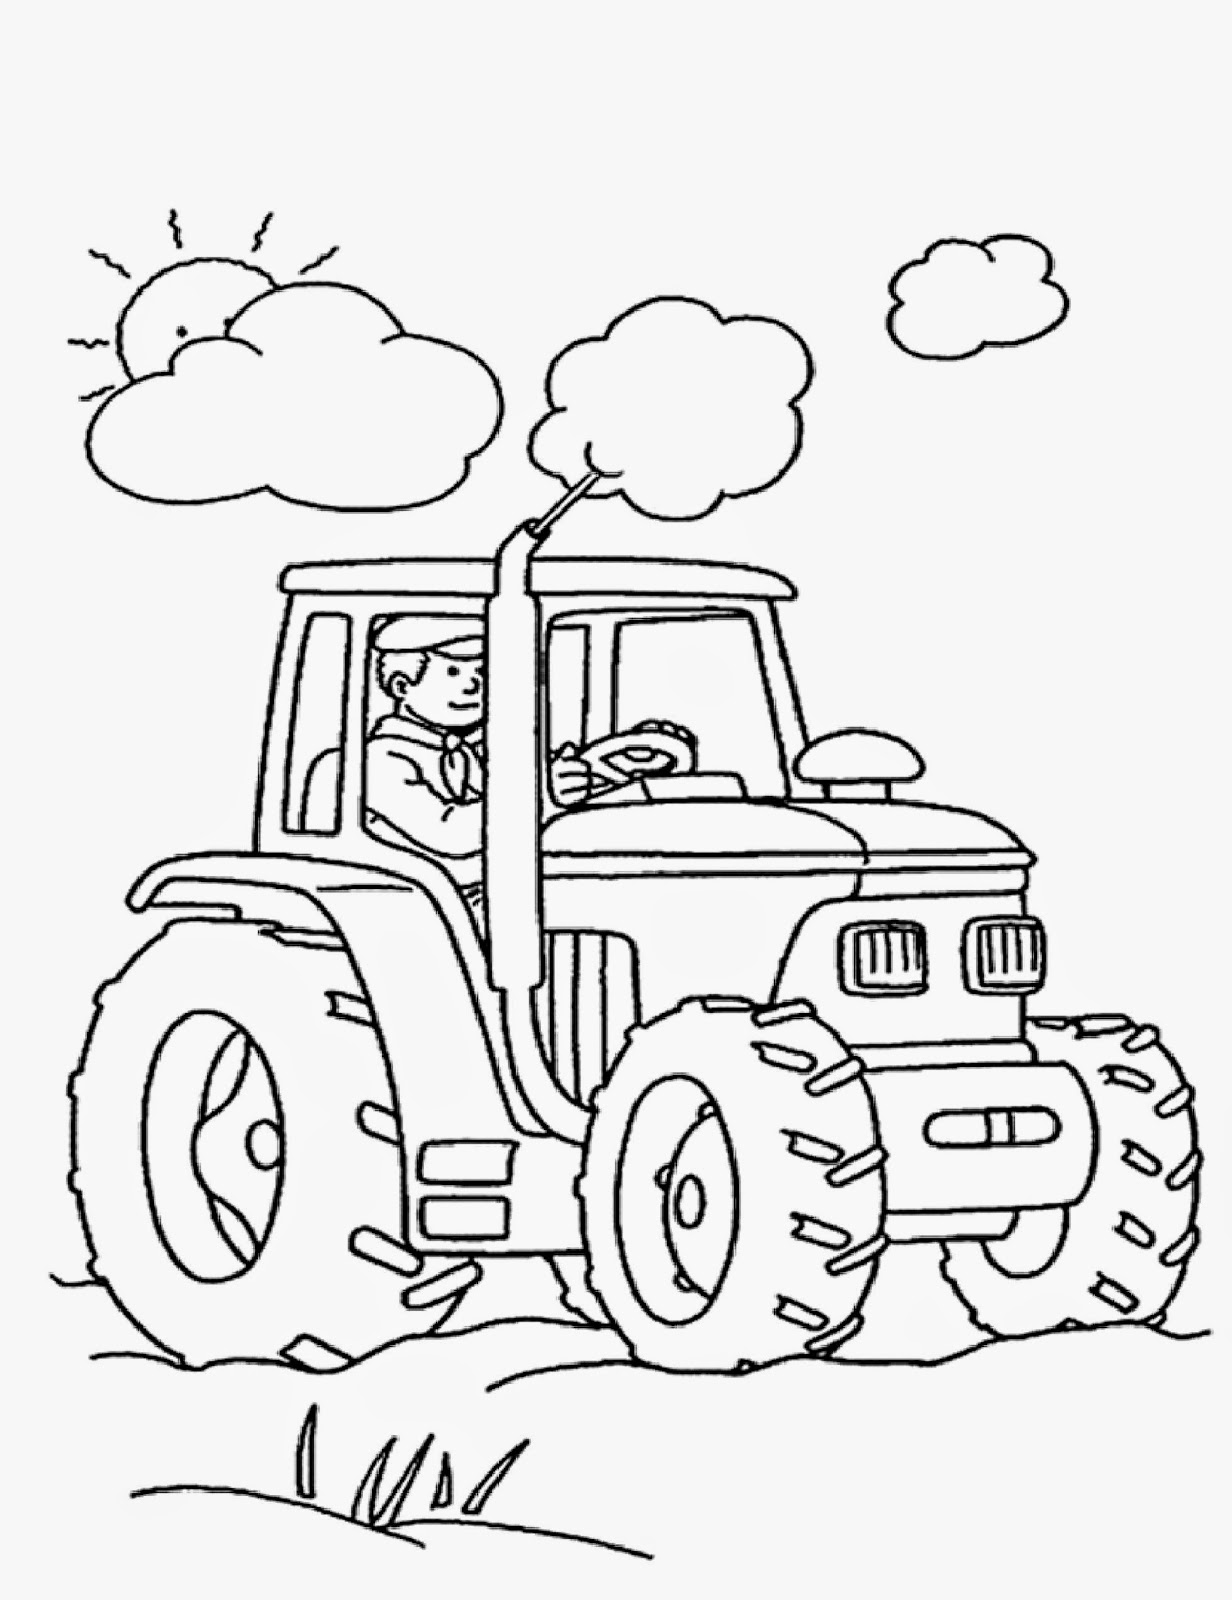 Coloring pages for boys free coloring sheet for Printable boy coloring pages